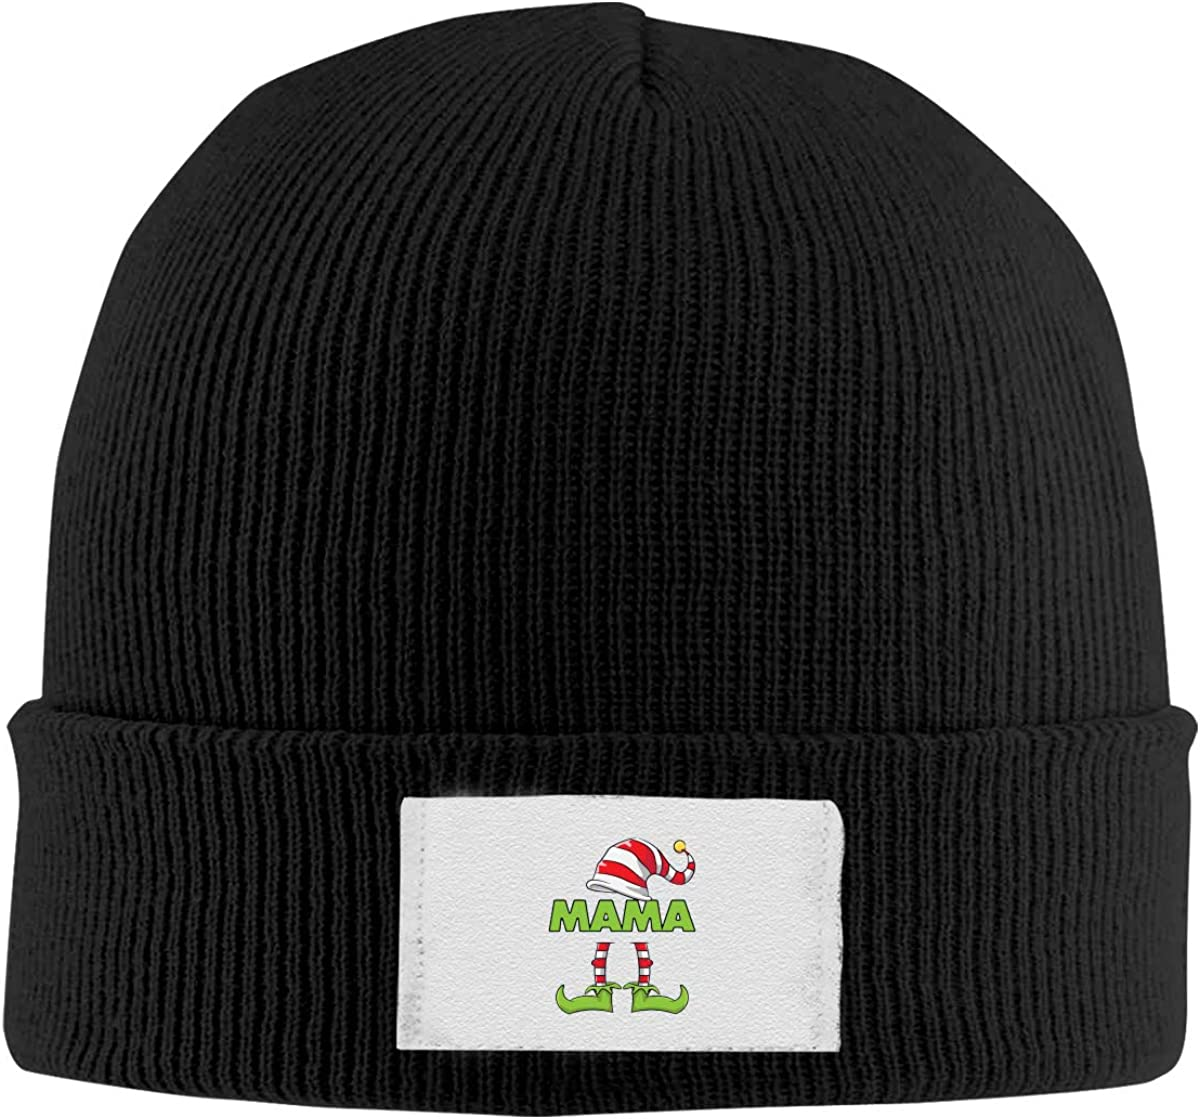 MA MA Knitted Hat Winter Outdoor Hat Warm Beanie Caps for Men Women